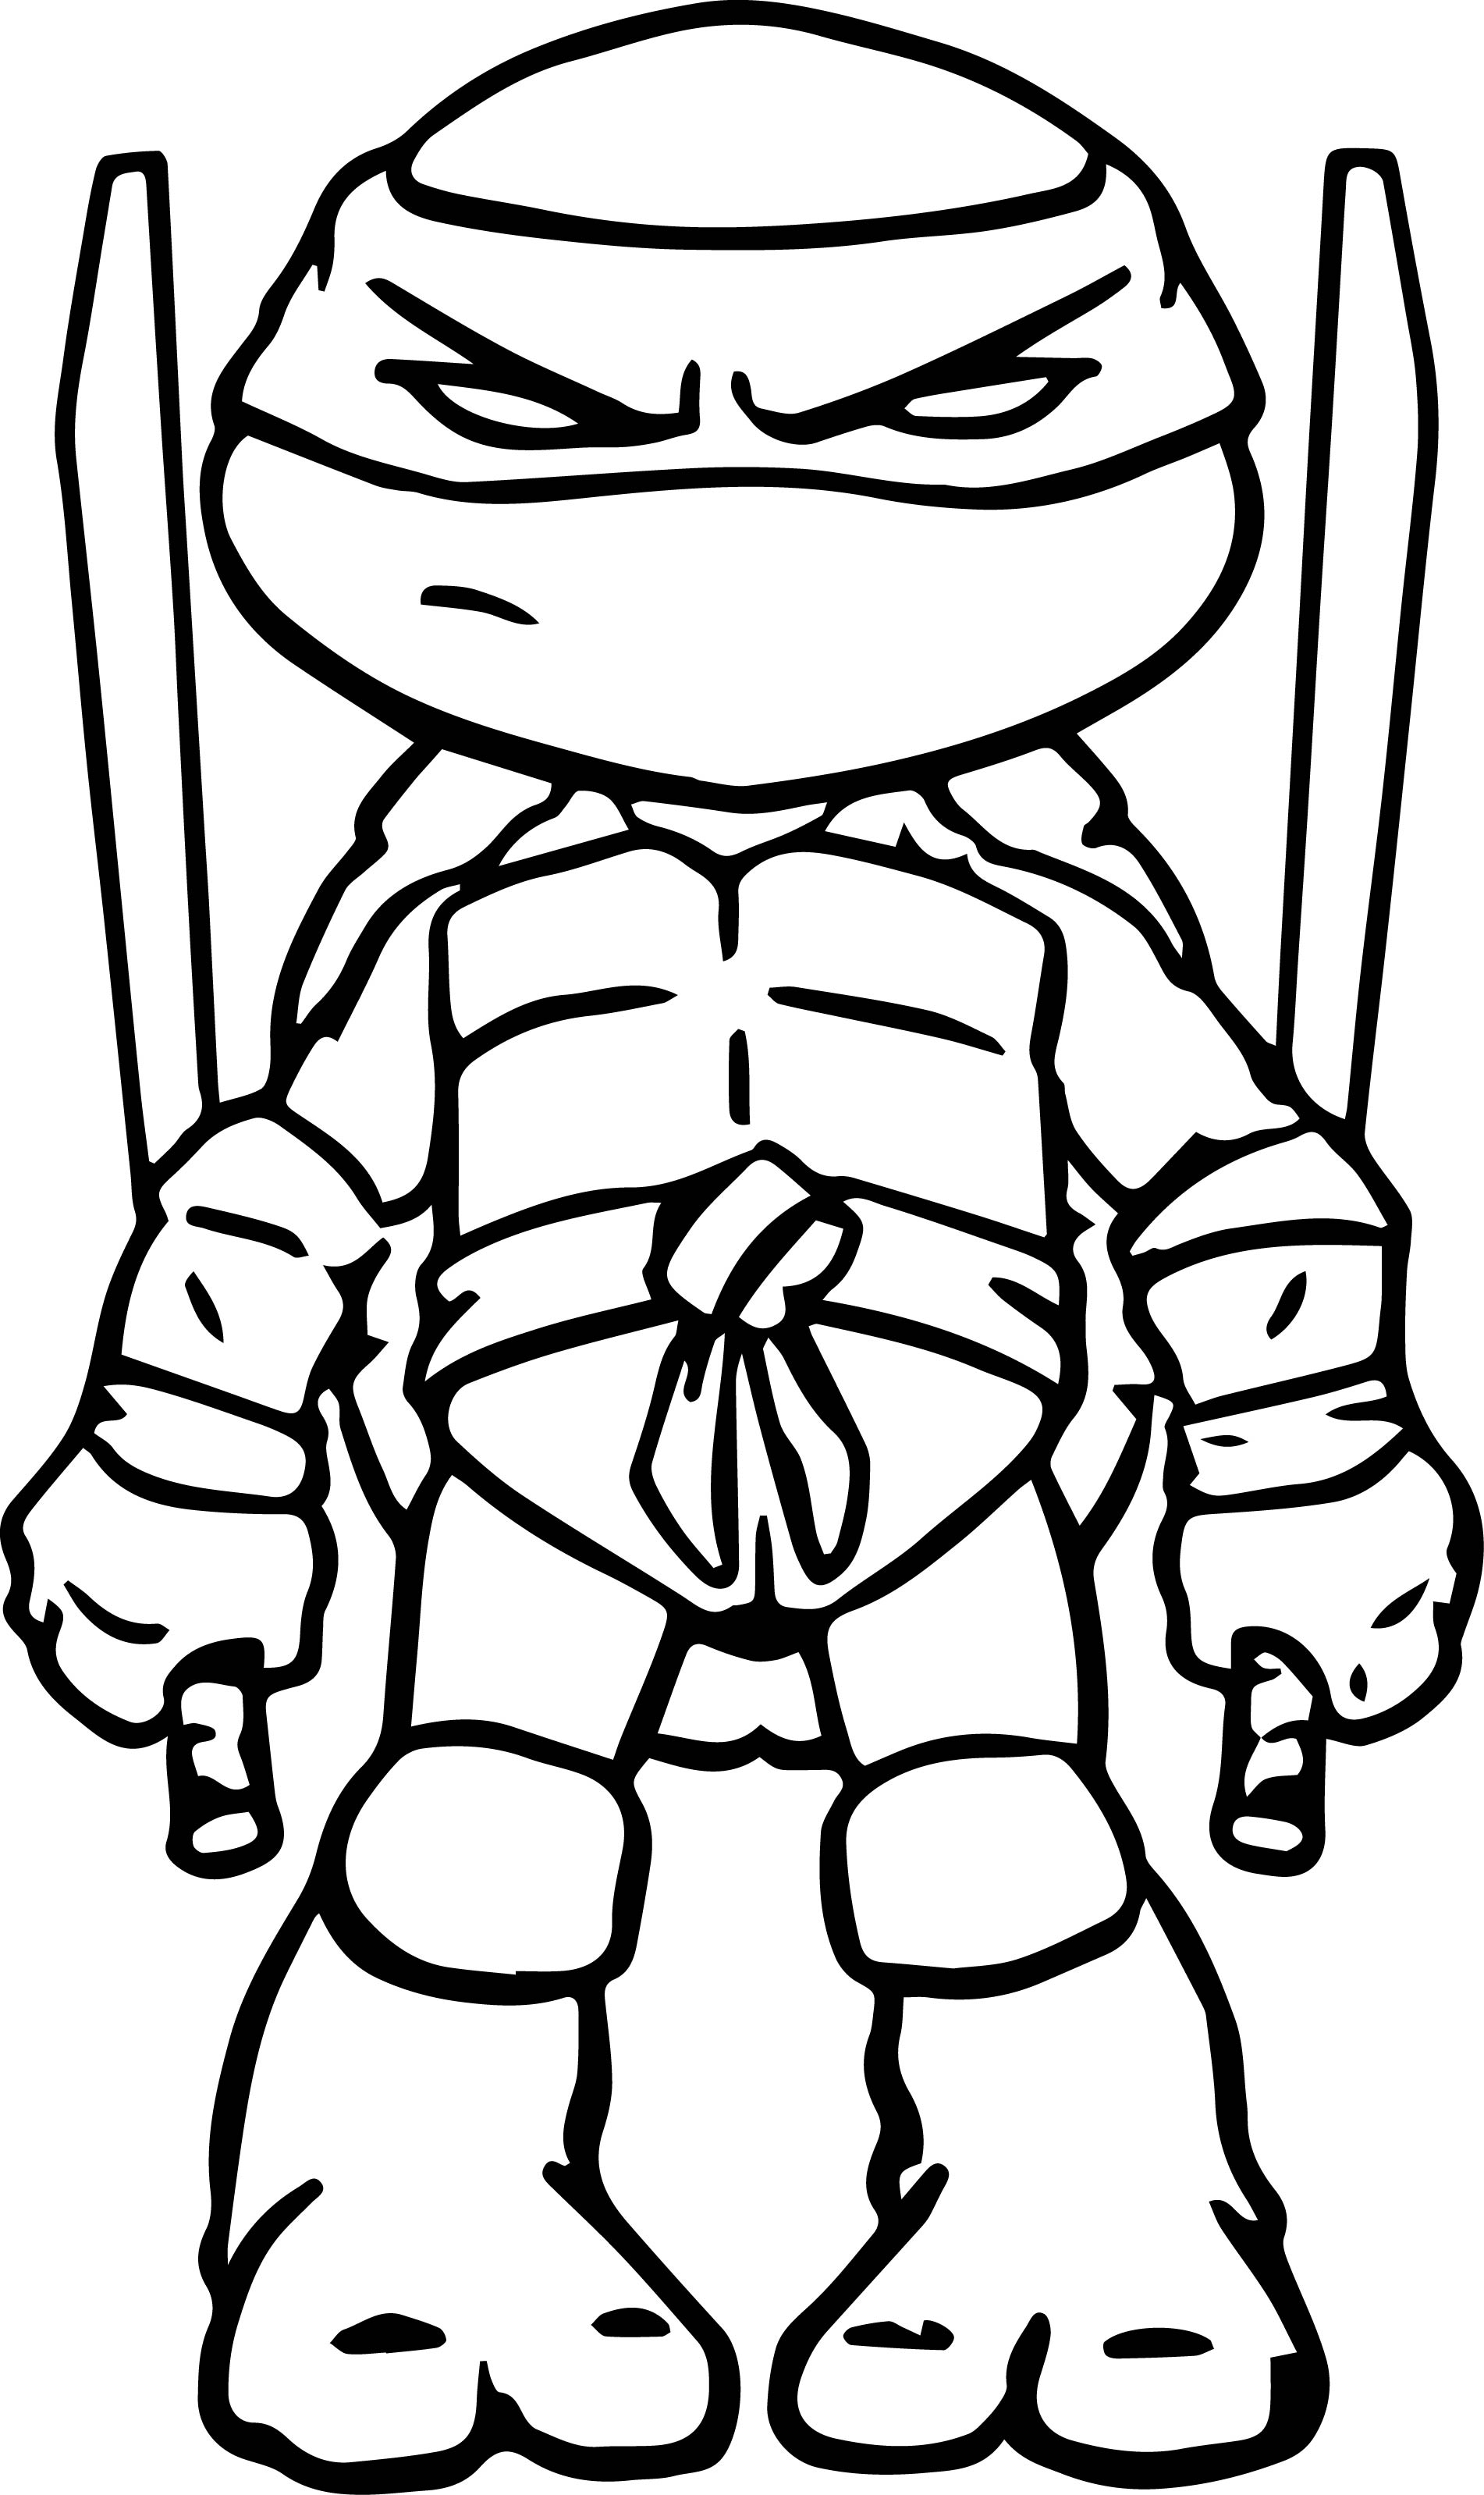 Turtle Cartoon Drawing at GetDrawings.com | Free for personal use ...